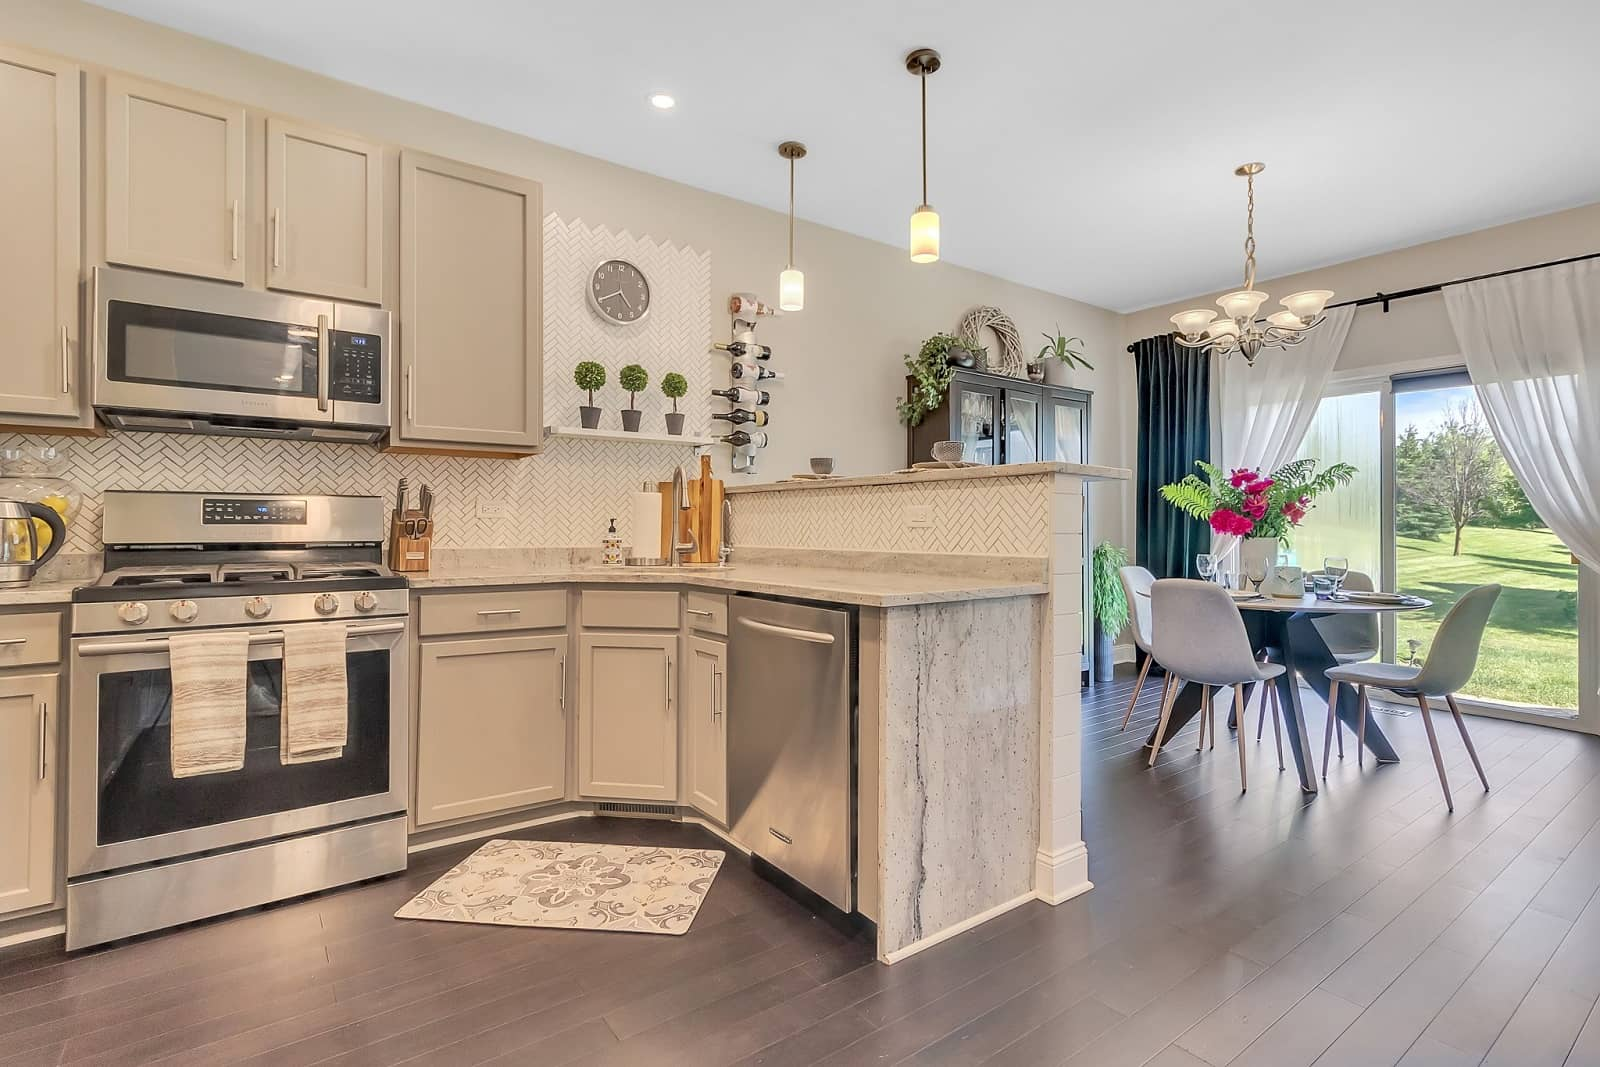 Real Estate Photography in Elgin - IL - USA - Kitchen View